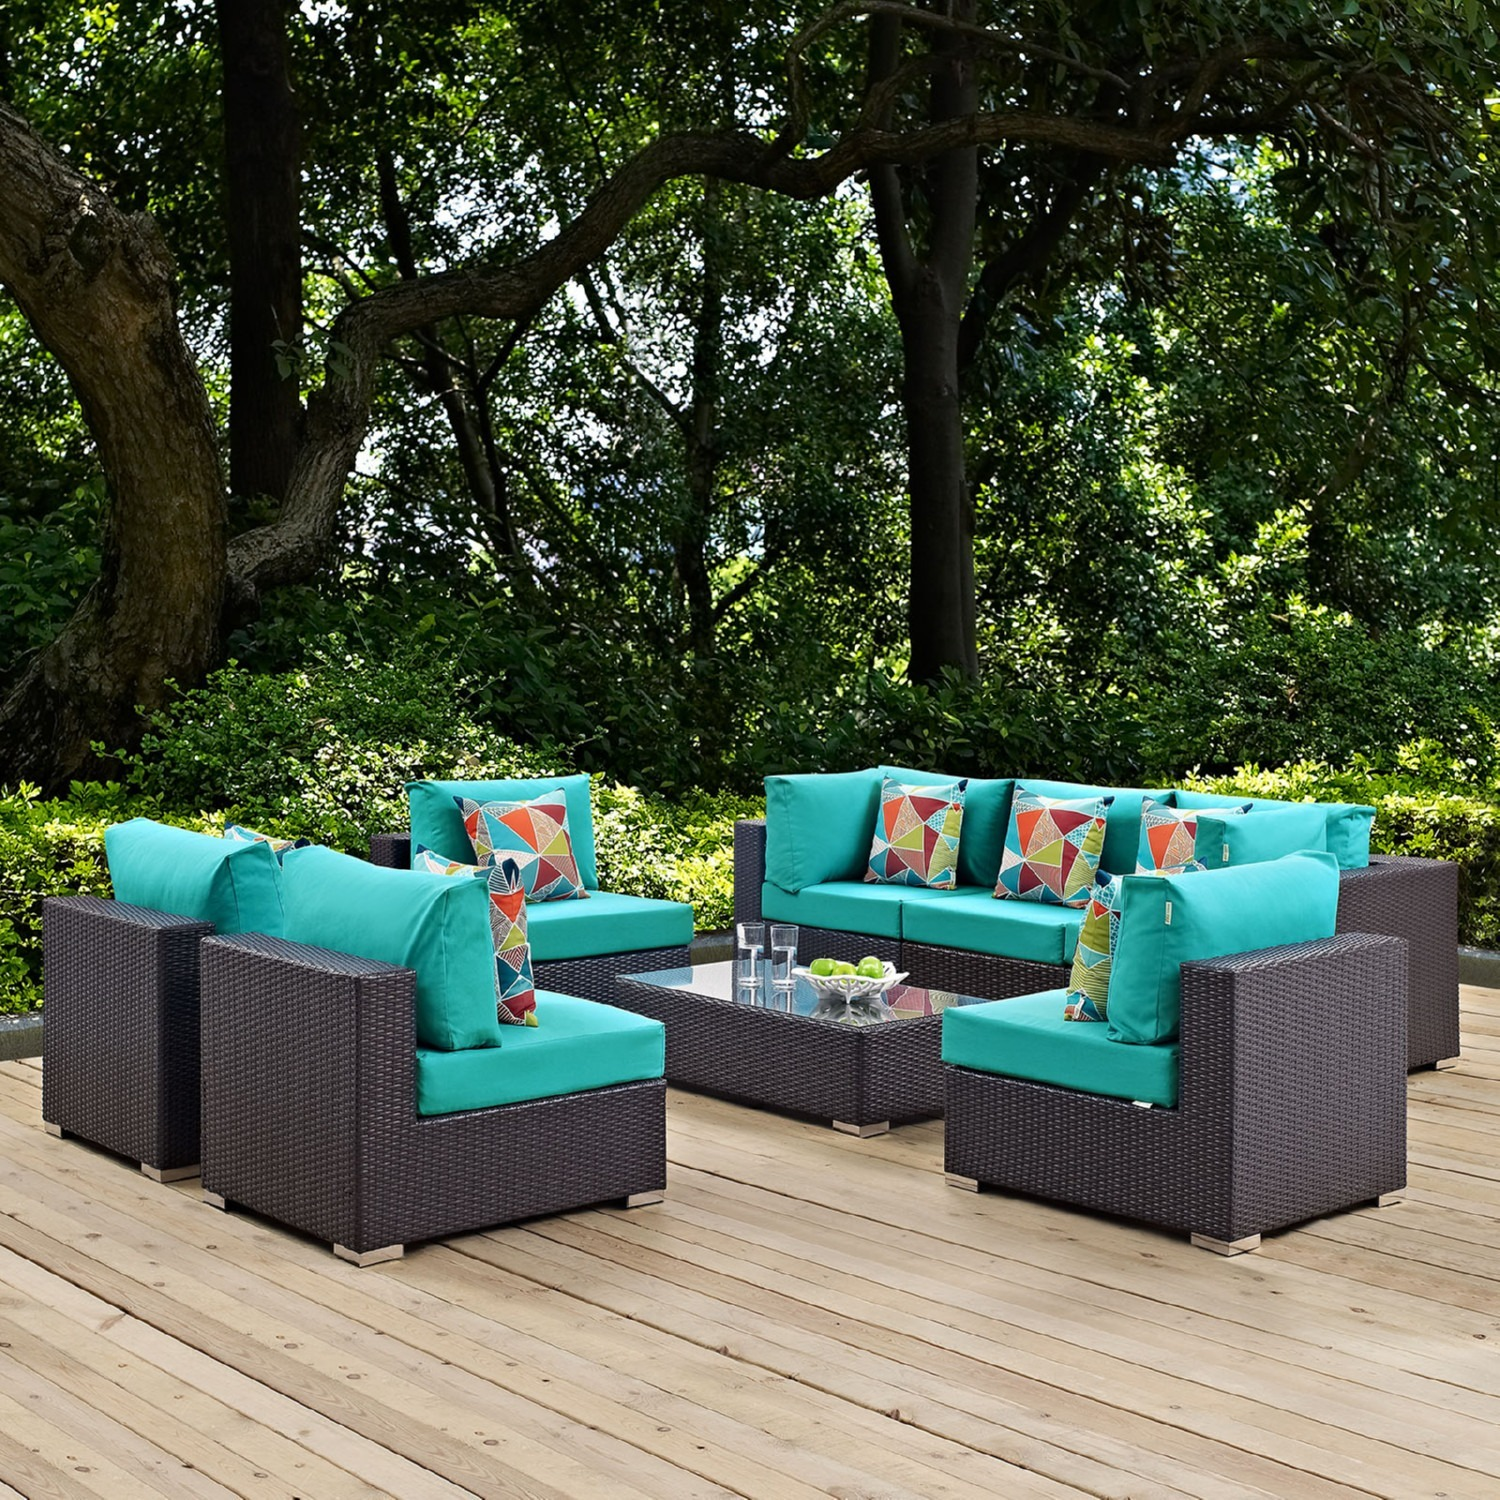 8-Piece Outdoor Sectional In Turquoise Cushion - image-4